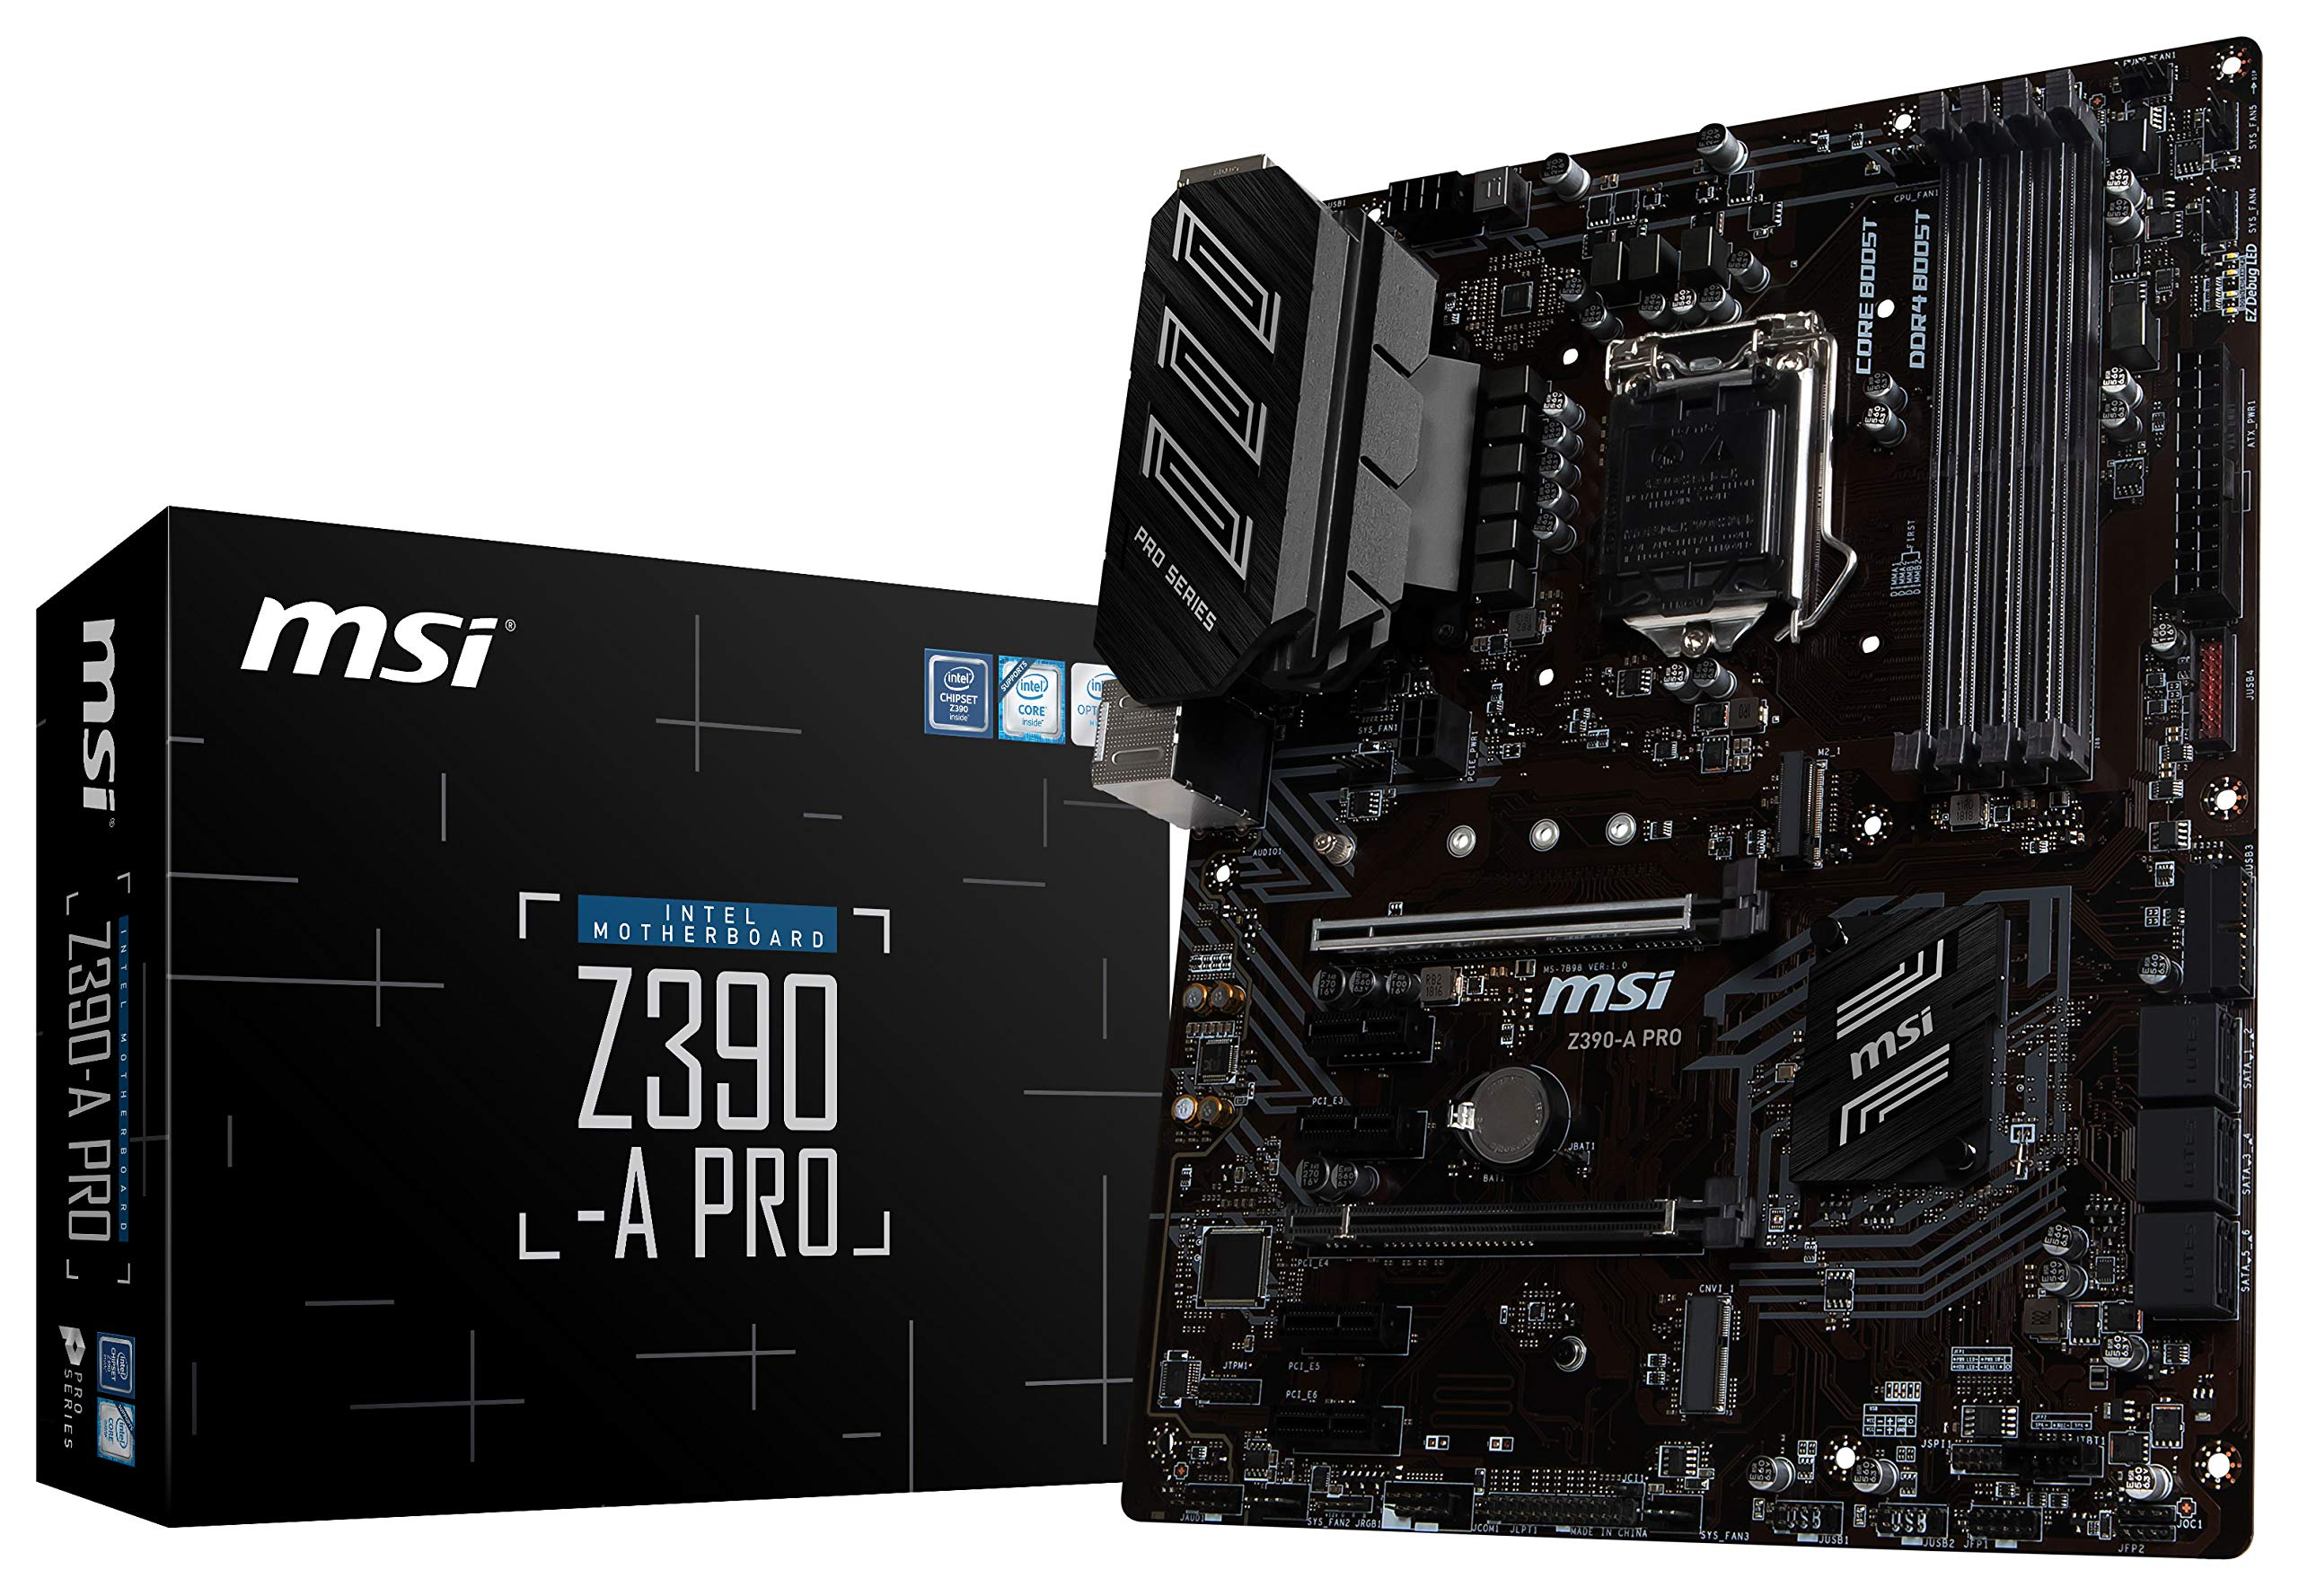 MSI Z390-A PRO LGA1151 (Intel 8th and 9th Gen) M.2 USB 3.1 Gen 2 DDR4 HDMI DP CFX Dual Gigabit LAN ATX Z390 Gaming Motherboard by MSI